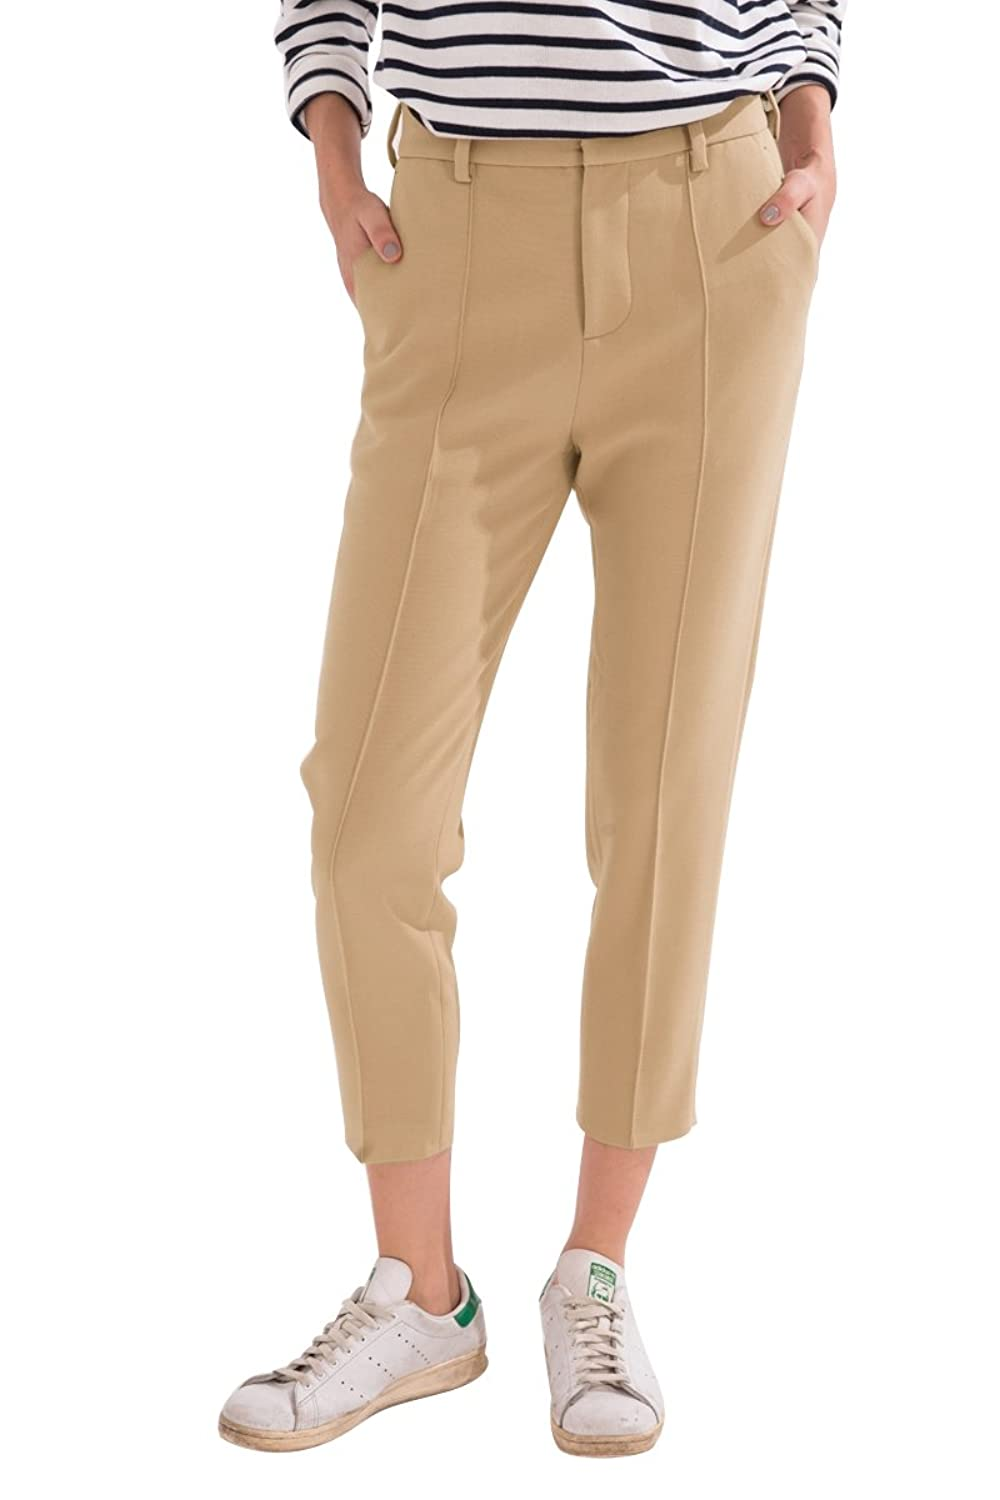 Frontrowshop Tapered Capri Pants